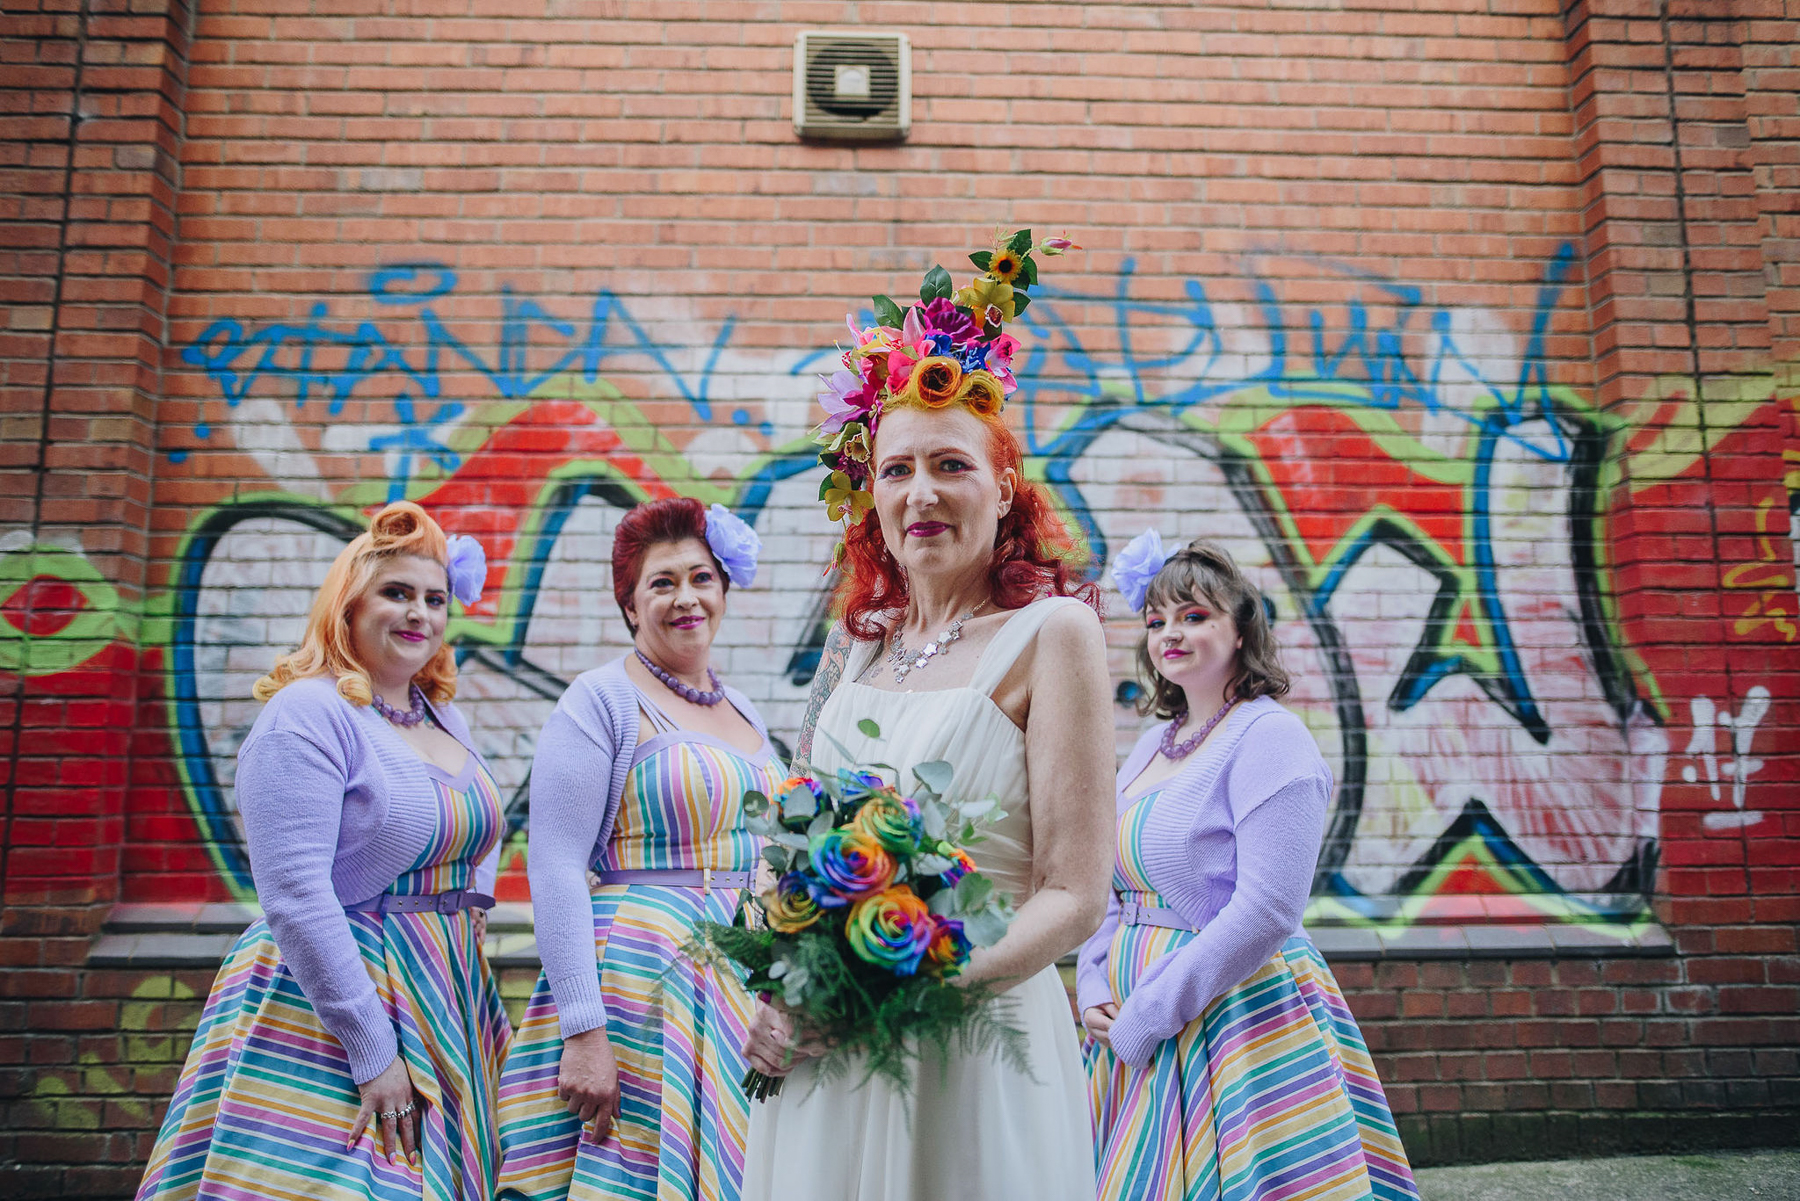 Alternative_Manchester_Northern_Quarter_Wedding_Photography_The_Pin-Up_Bride-37.jpg